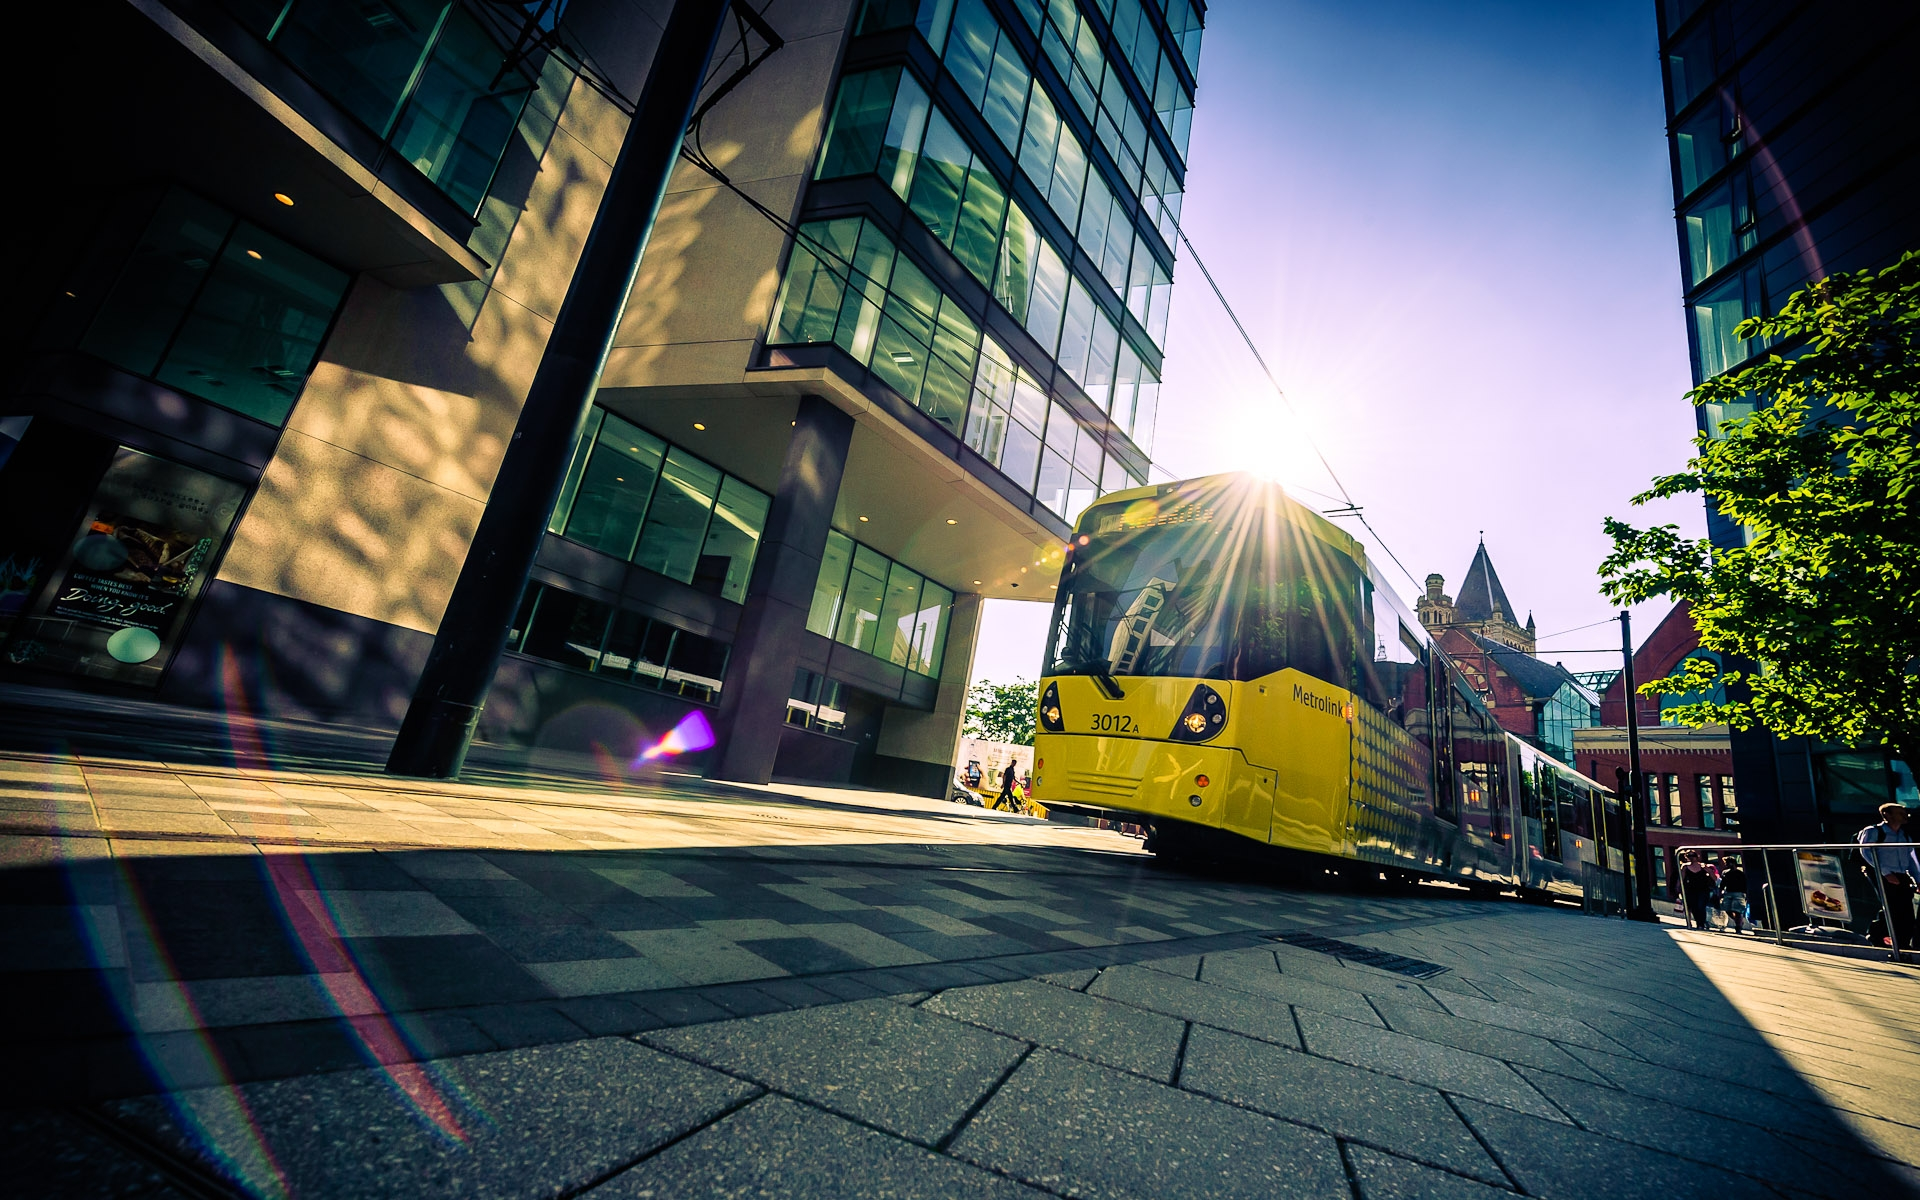 Commercial photo of Manchester Metrolink tram